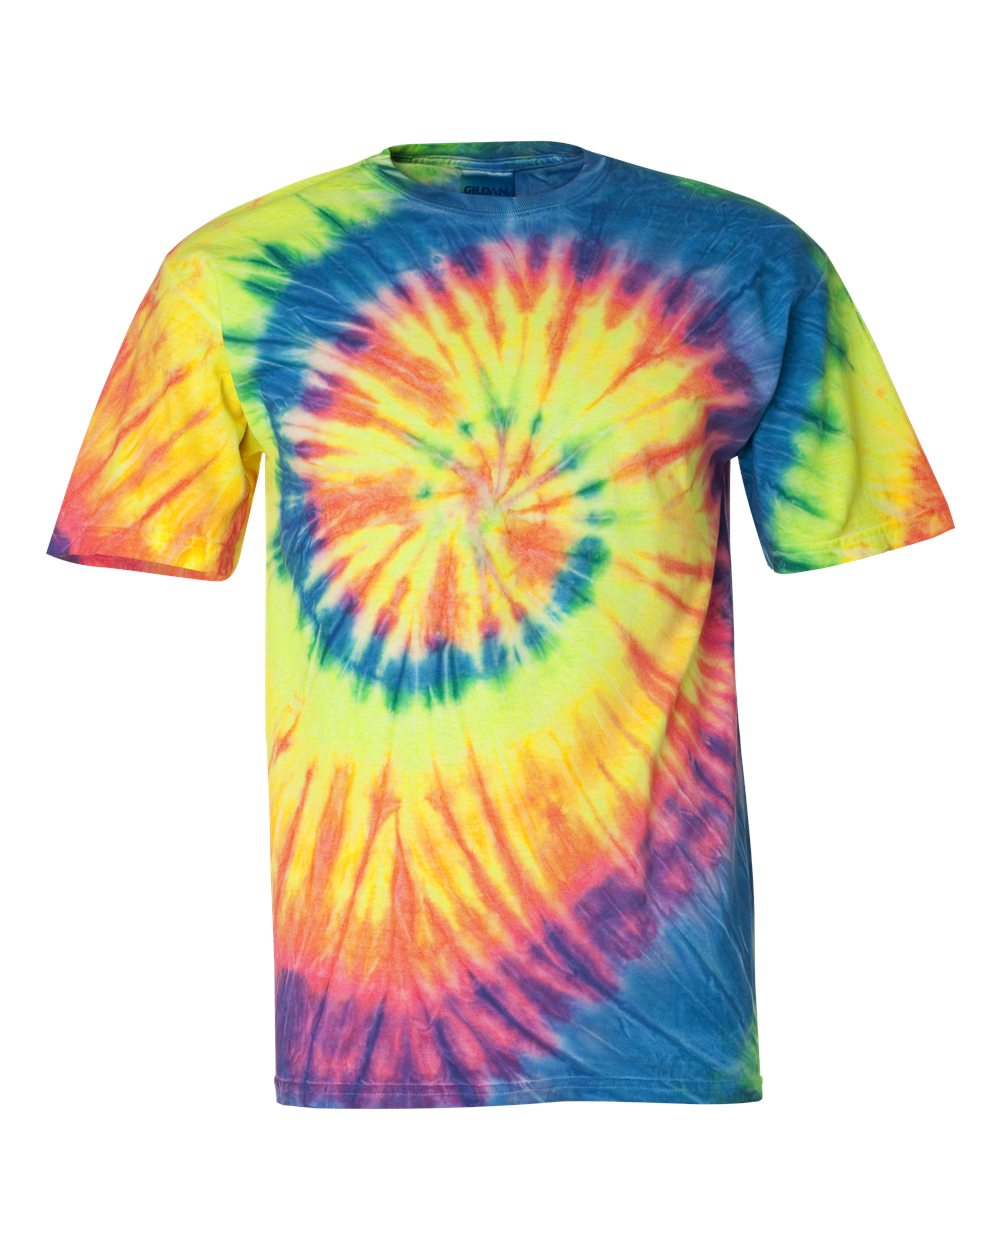 click to view Florescent Rainbow Swirl